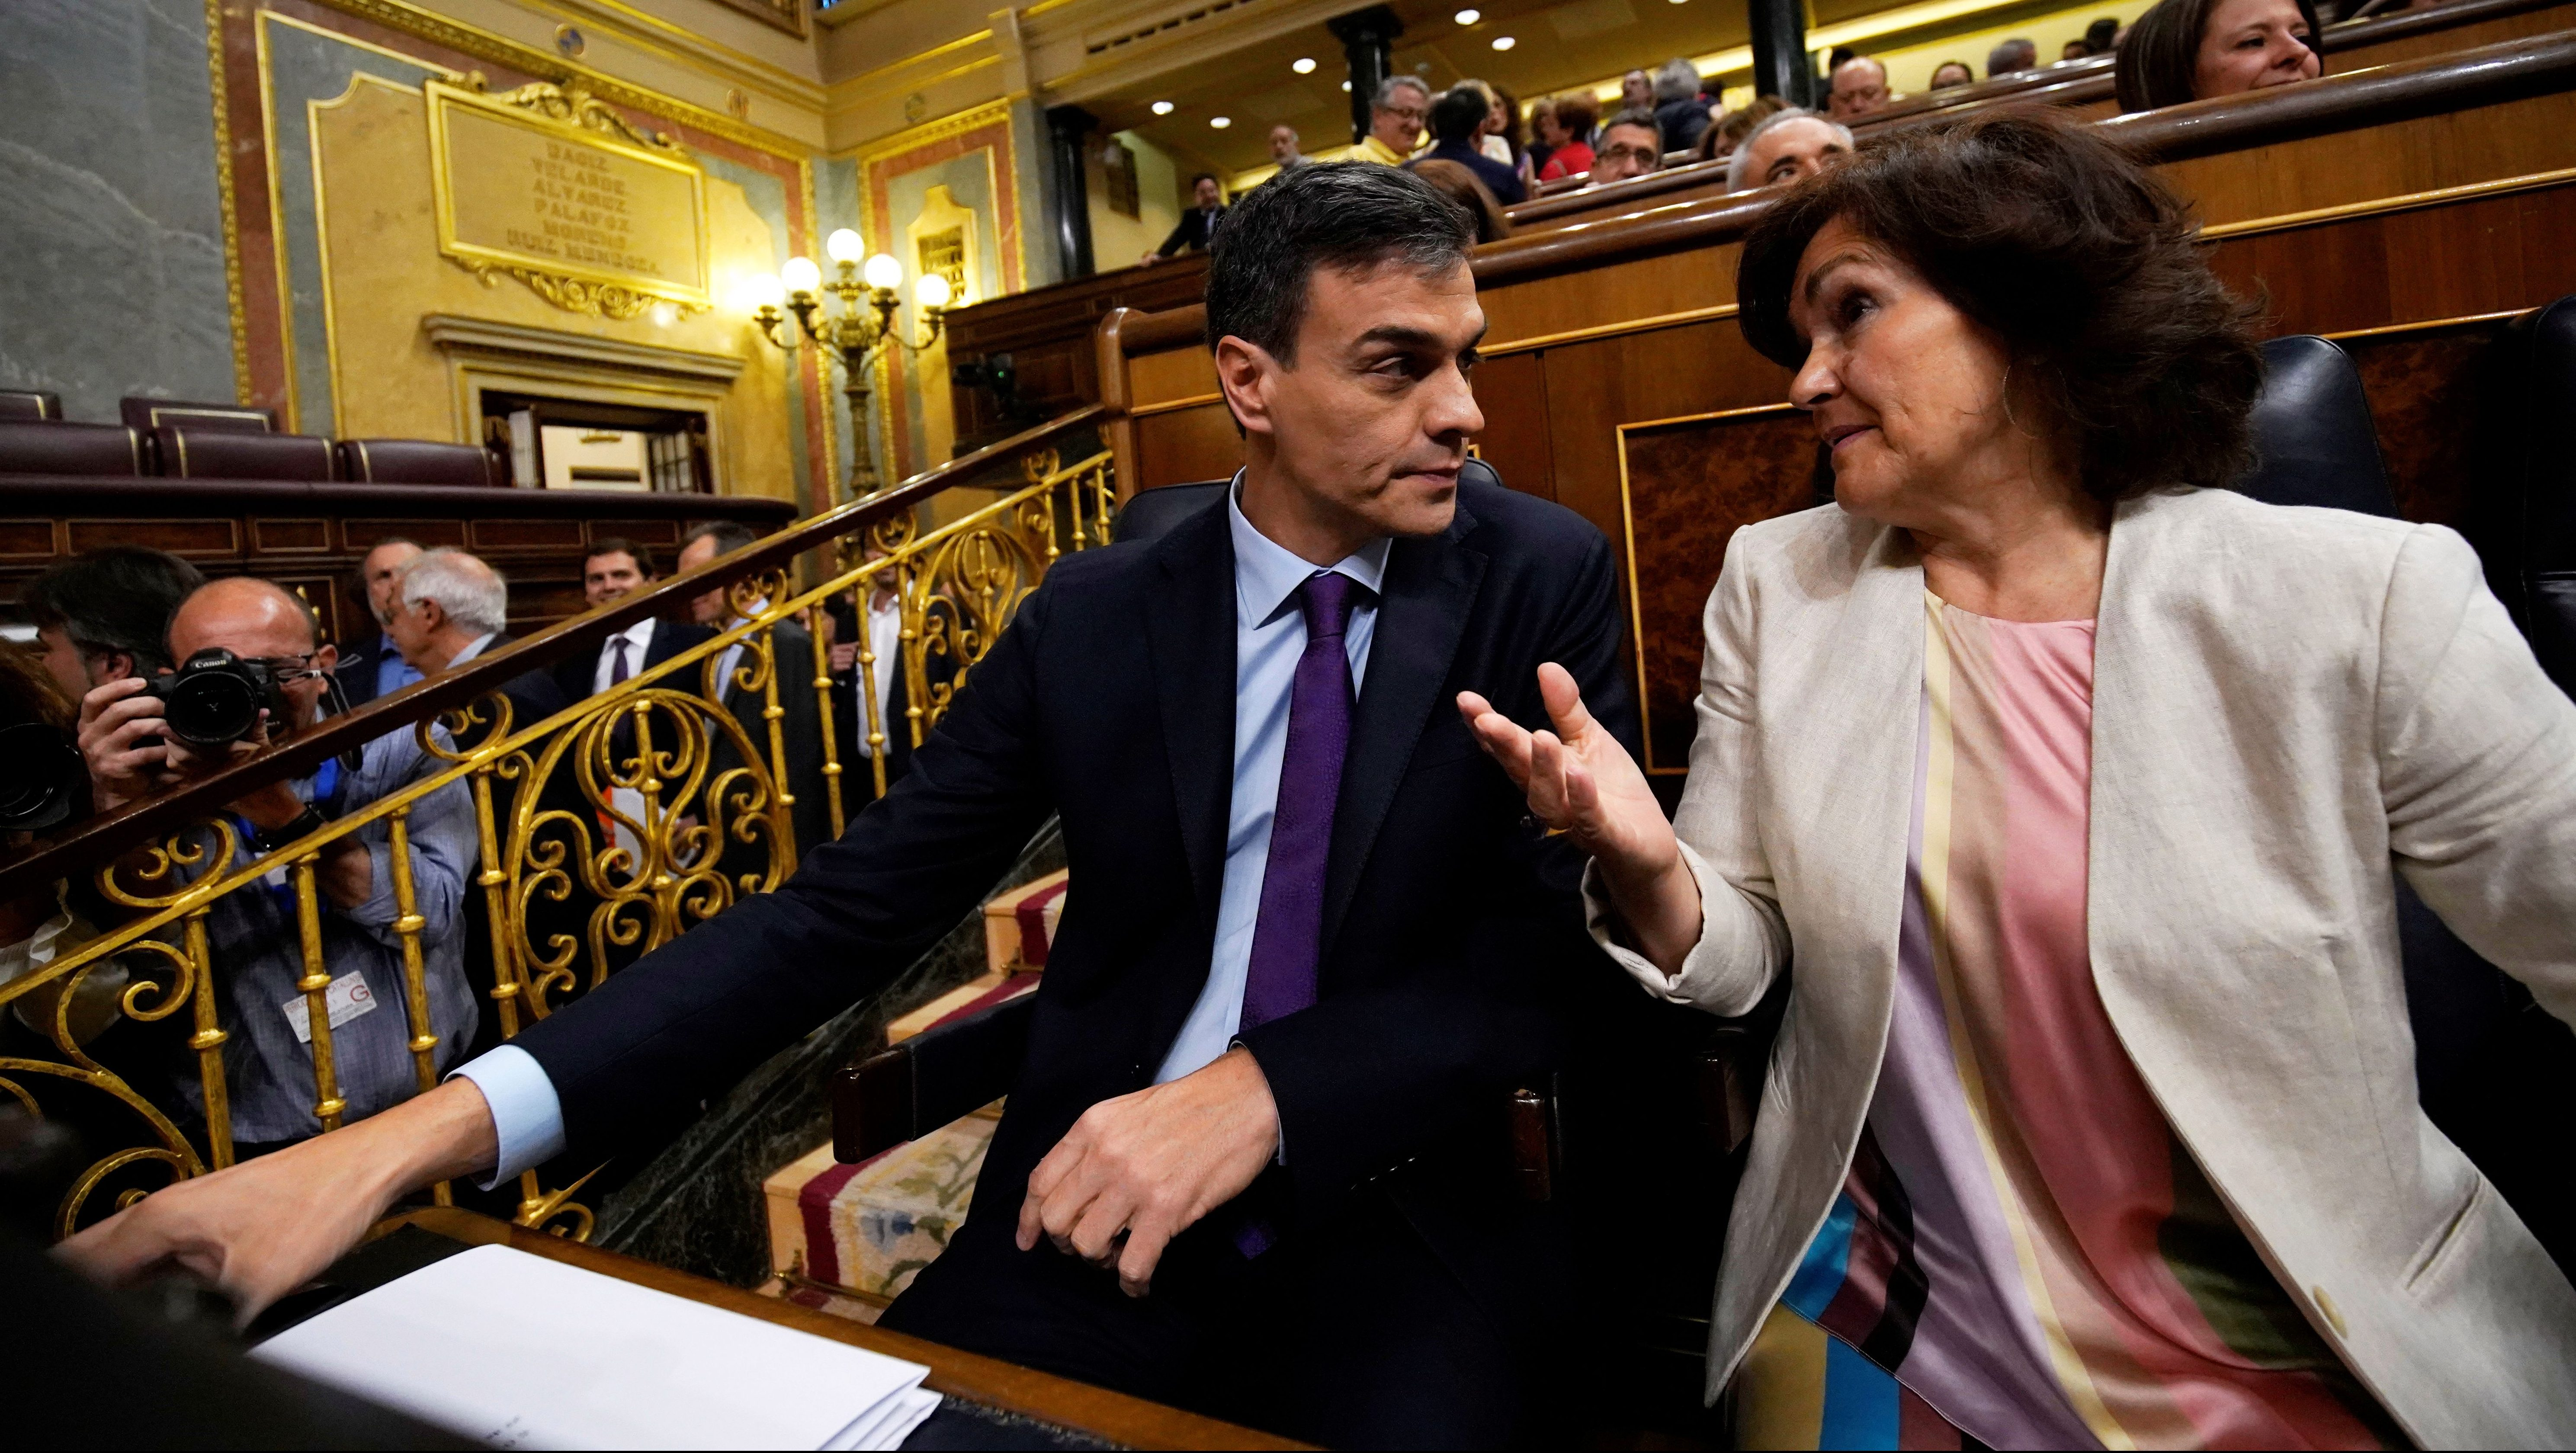 Spain's Prime Minister Pedro Sanchez and Spain's Deputy Prime Minister and Equality Minister Carmen Calvo attend attend a cabinet control session at Parliament in Madrid, Spain June 27, 2018.